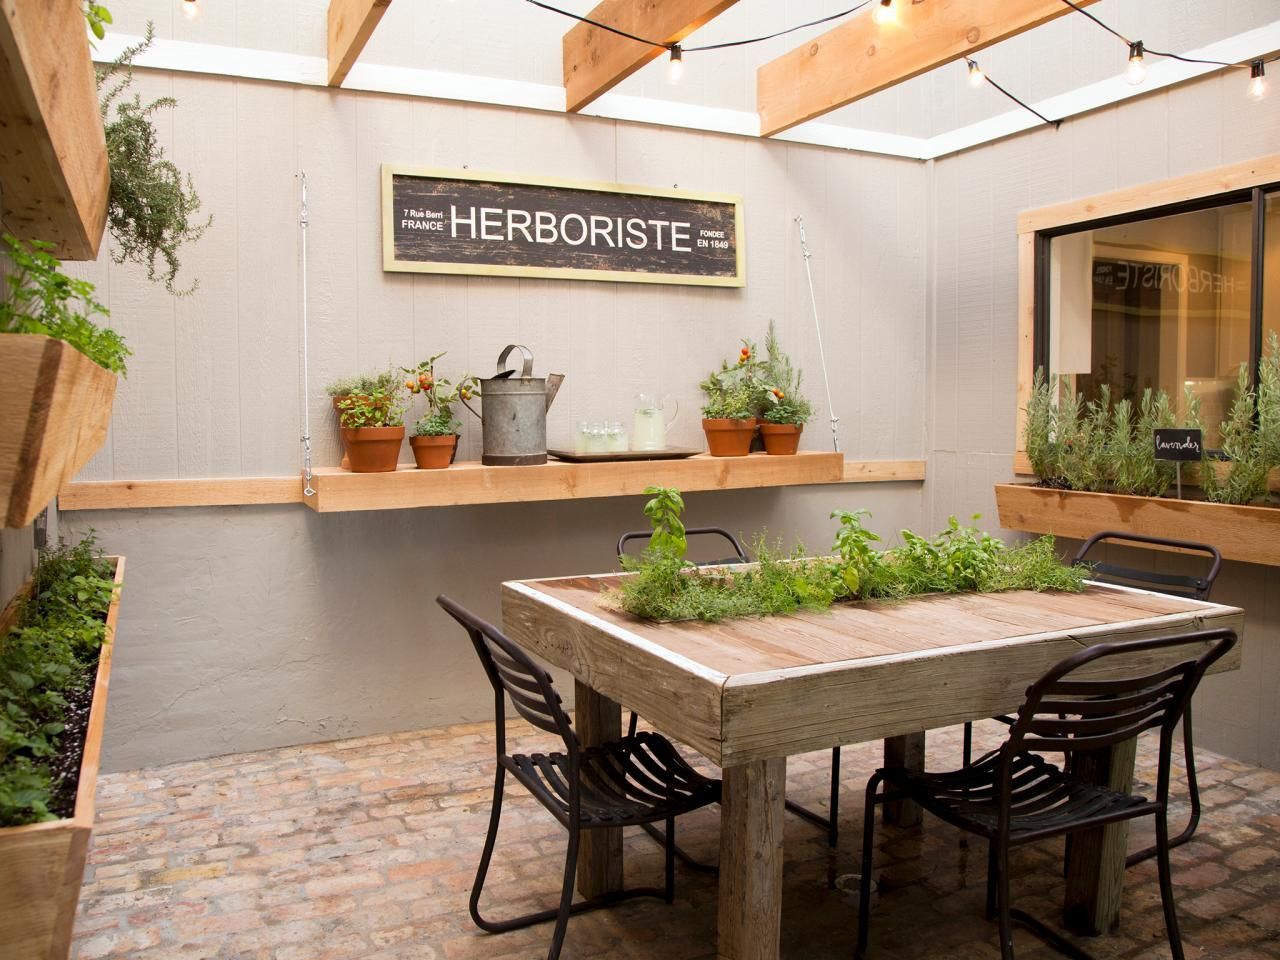 Fixer upper outdoor kitchen - Hgtv S Fixer Upper Transformed This Once Awkward Atrium Into An Open Air Herb Garden With Wooden Window Boxes And Planters Located Right Off The Kitchen